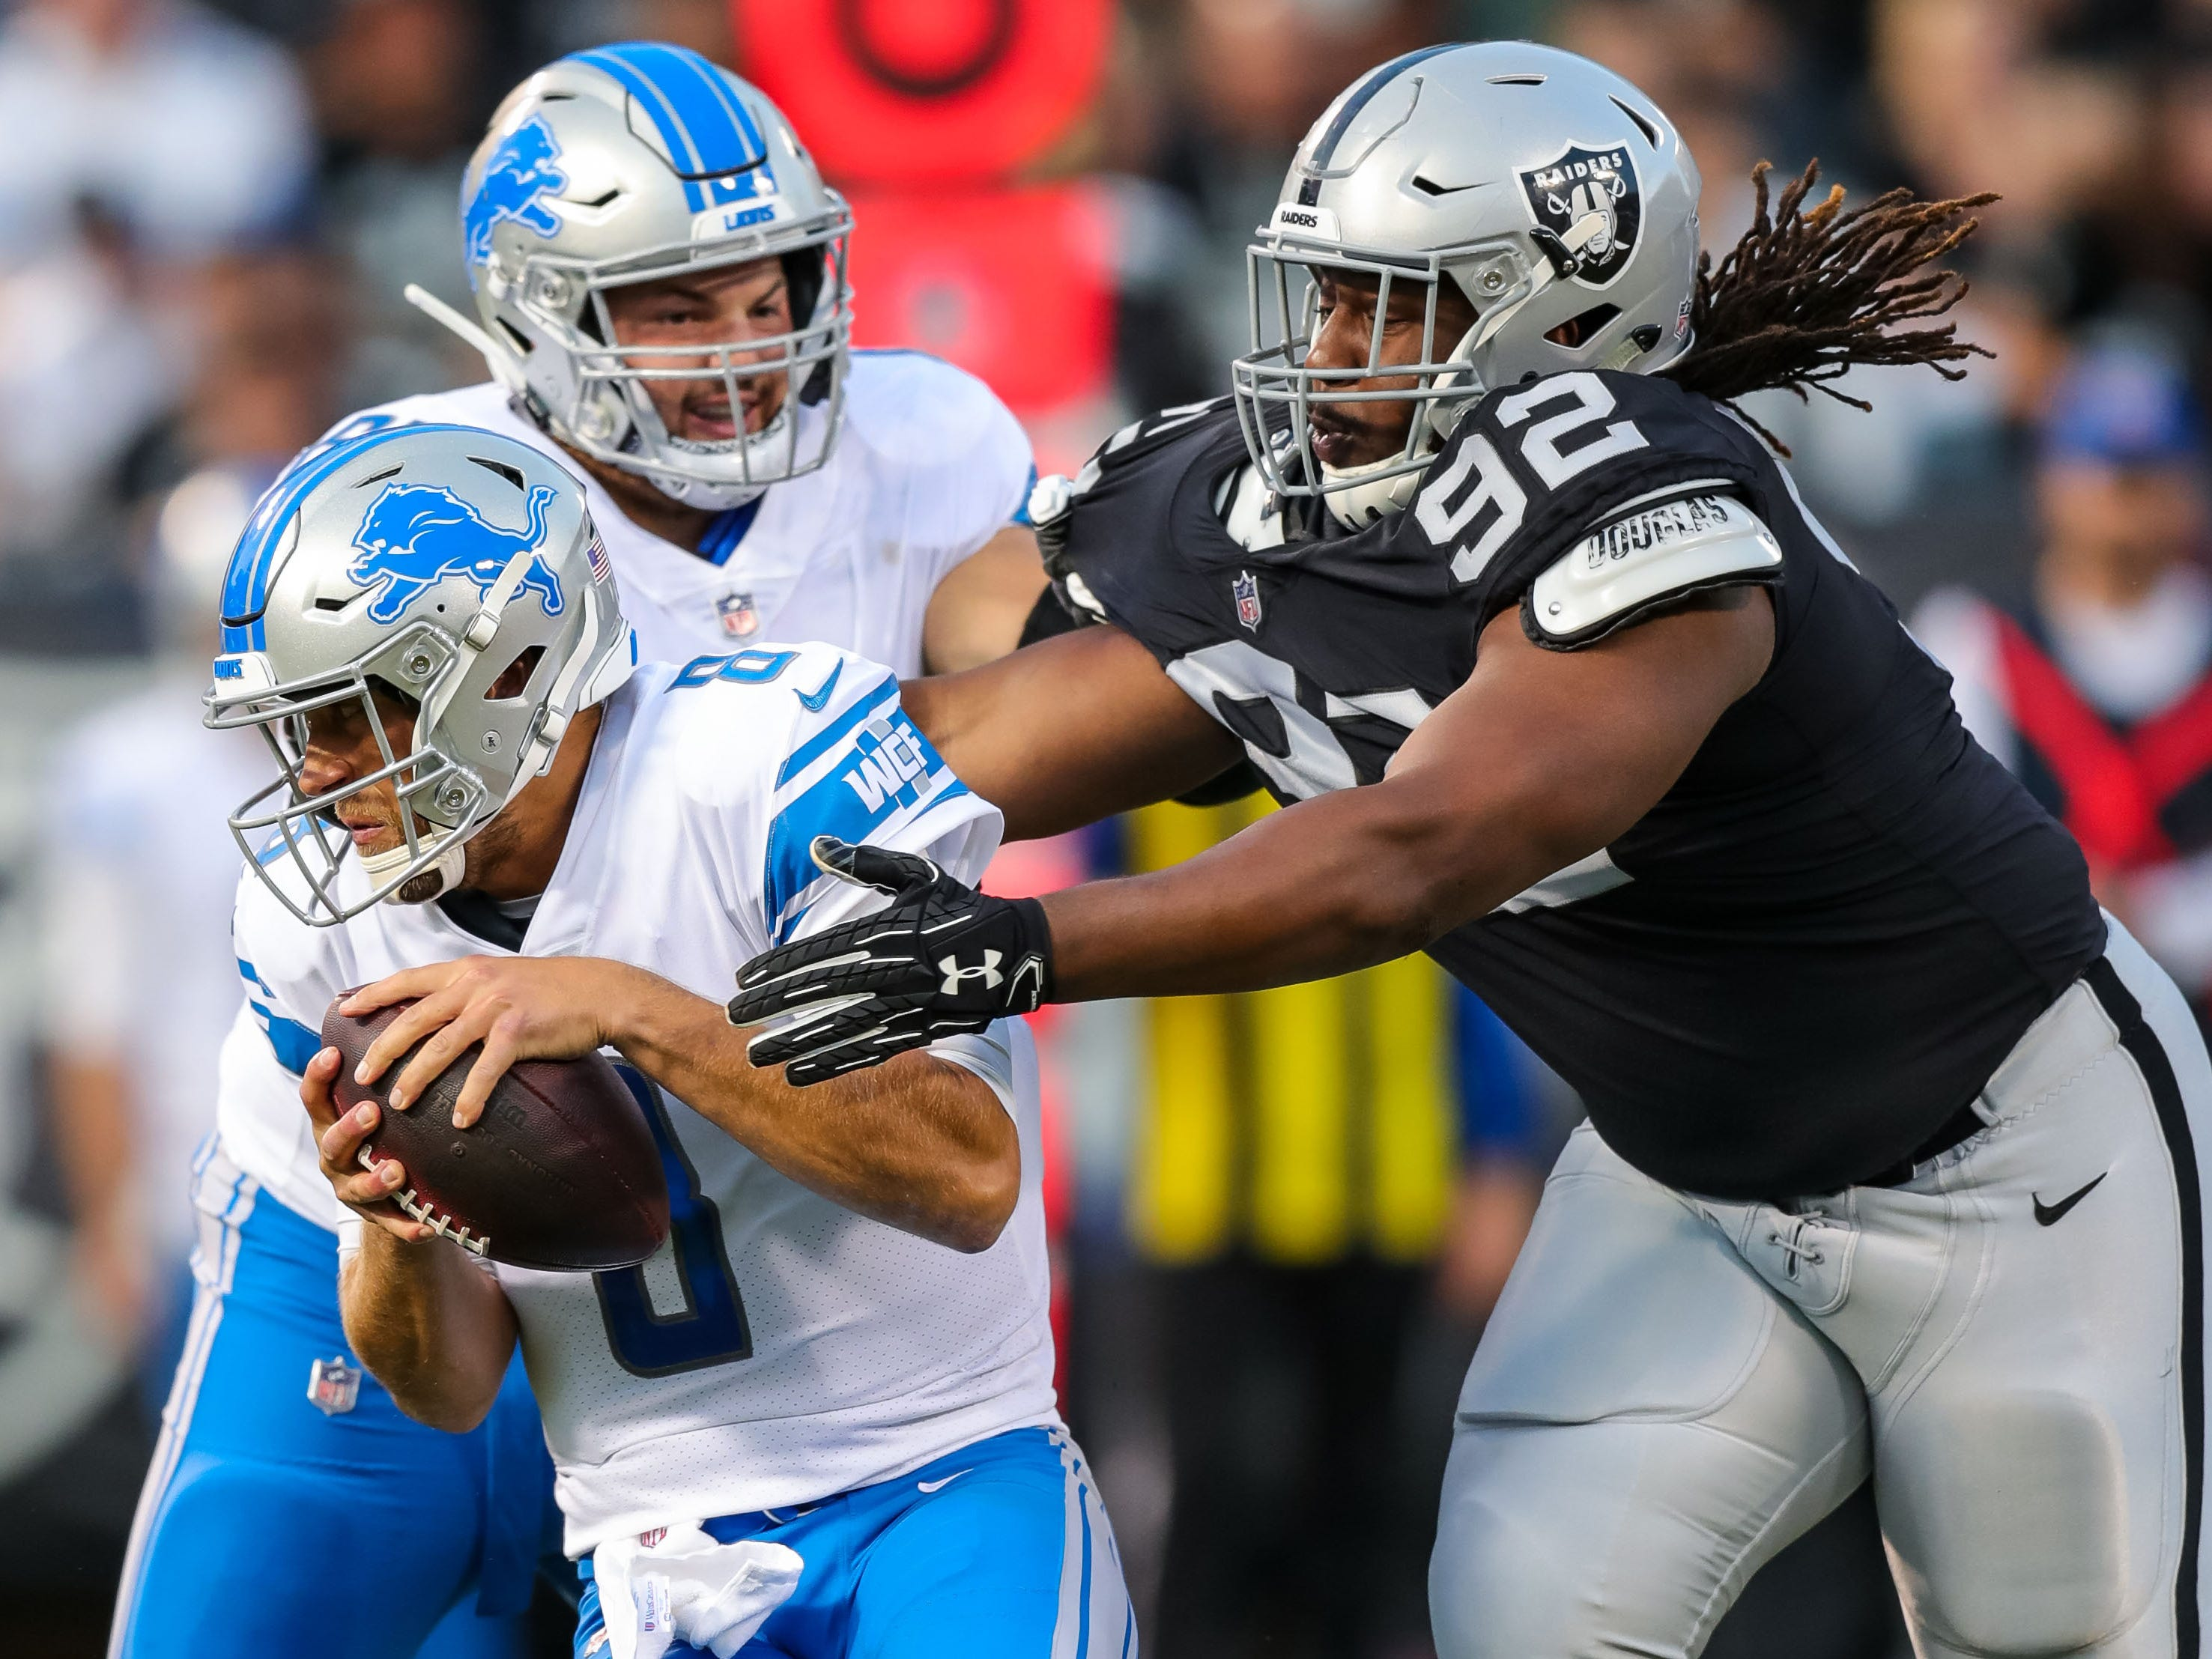 Detroit Lions quarterback Matt Cassel is sacked by Oakland Raiders nose tackle P.J. Hall during the first quarter at Oakland Coliseum.